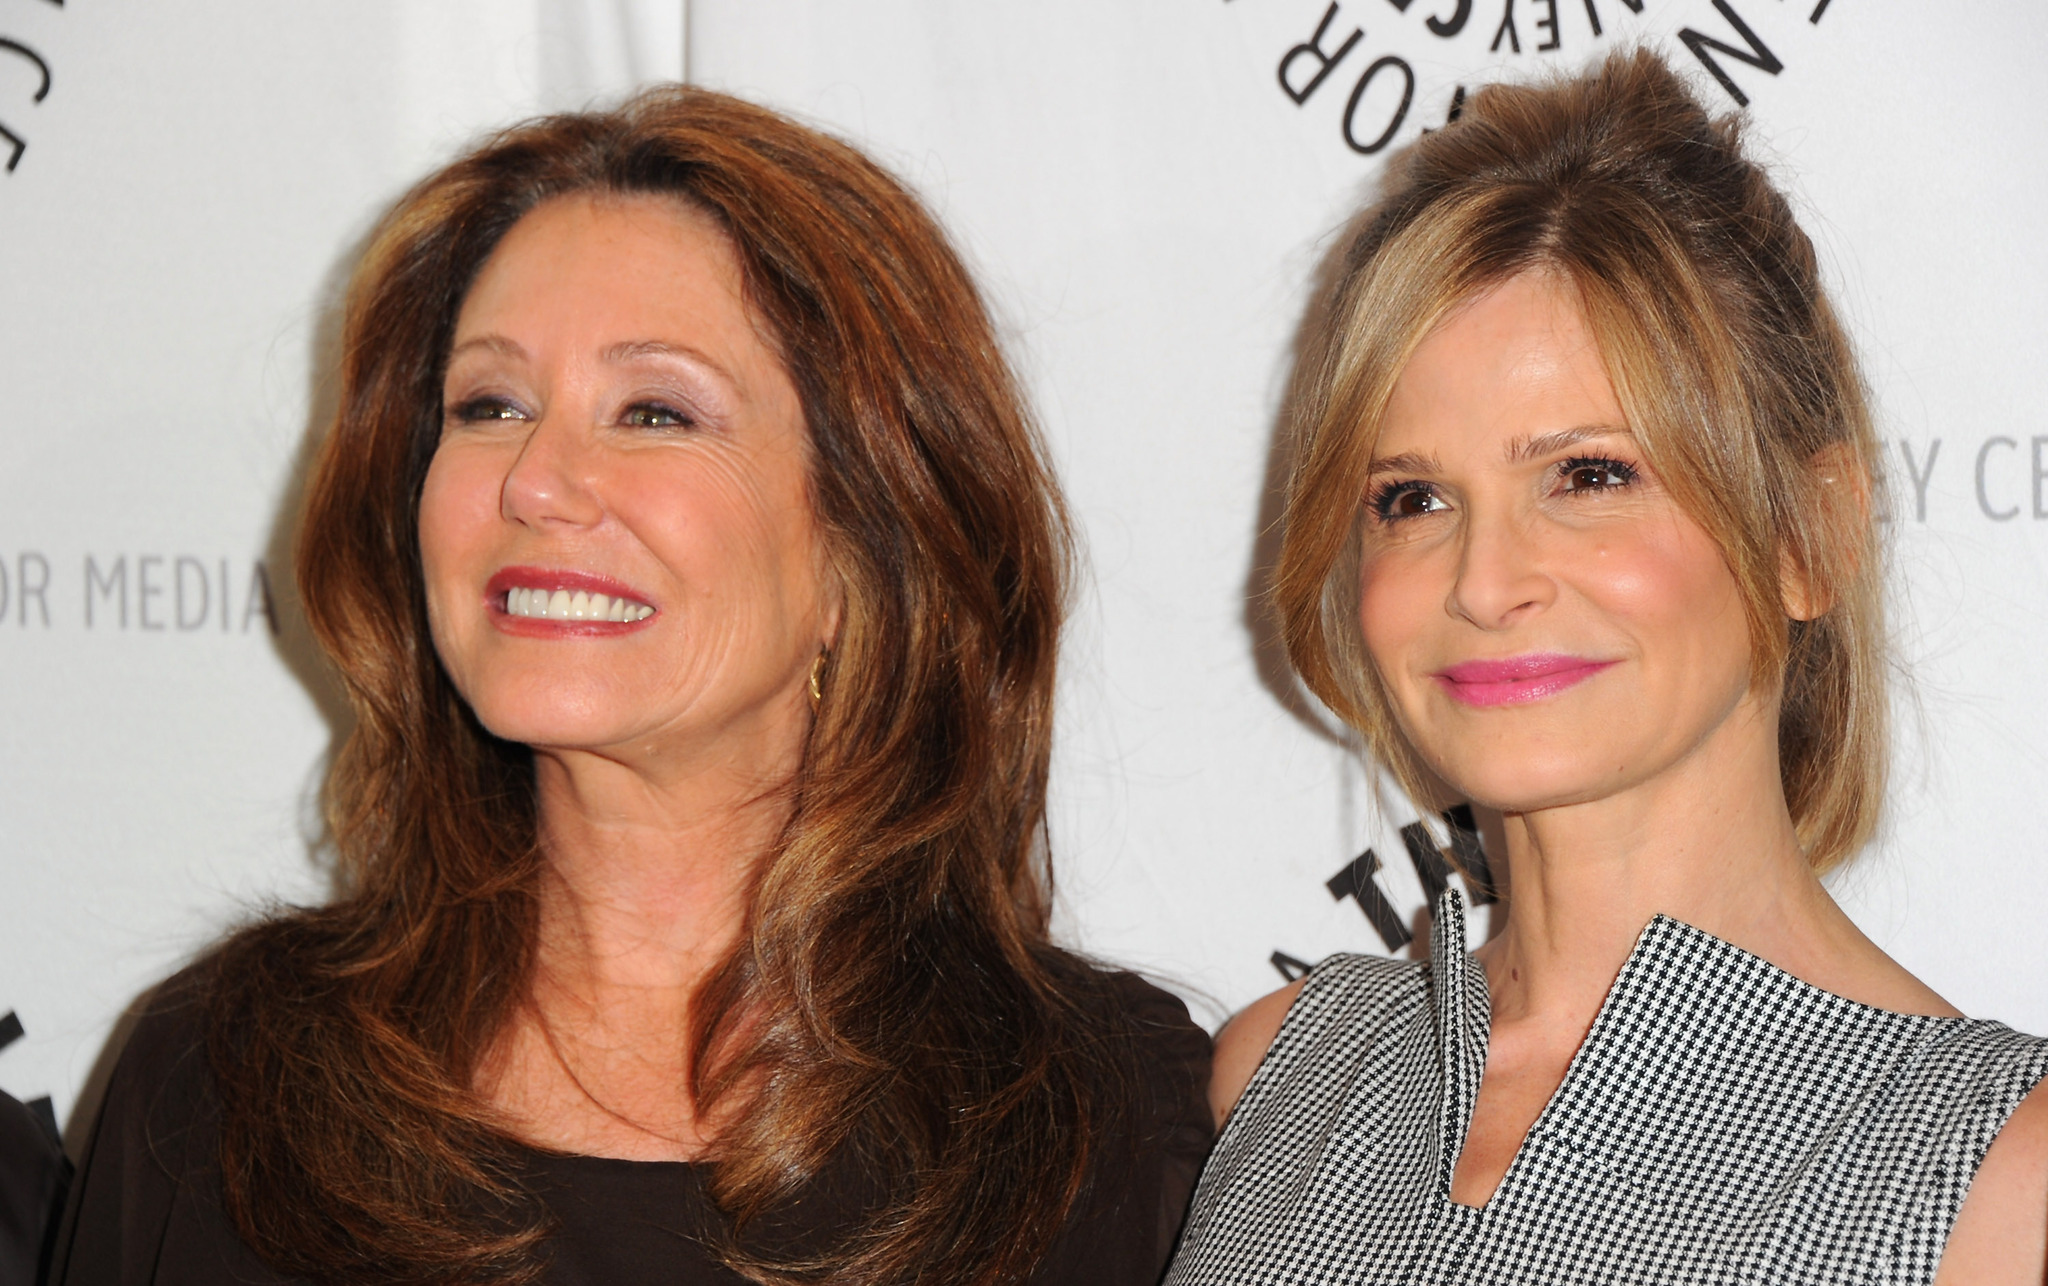 Mary McDonnell and Kyra Sedgwick at an event for The Closer (2005)